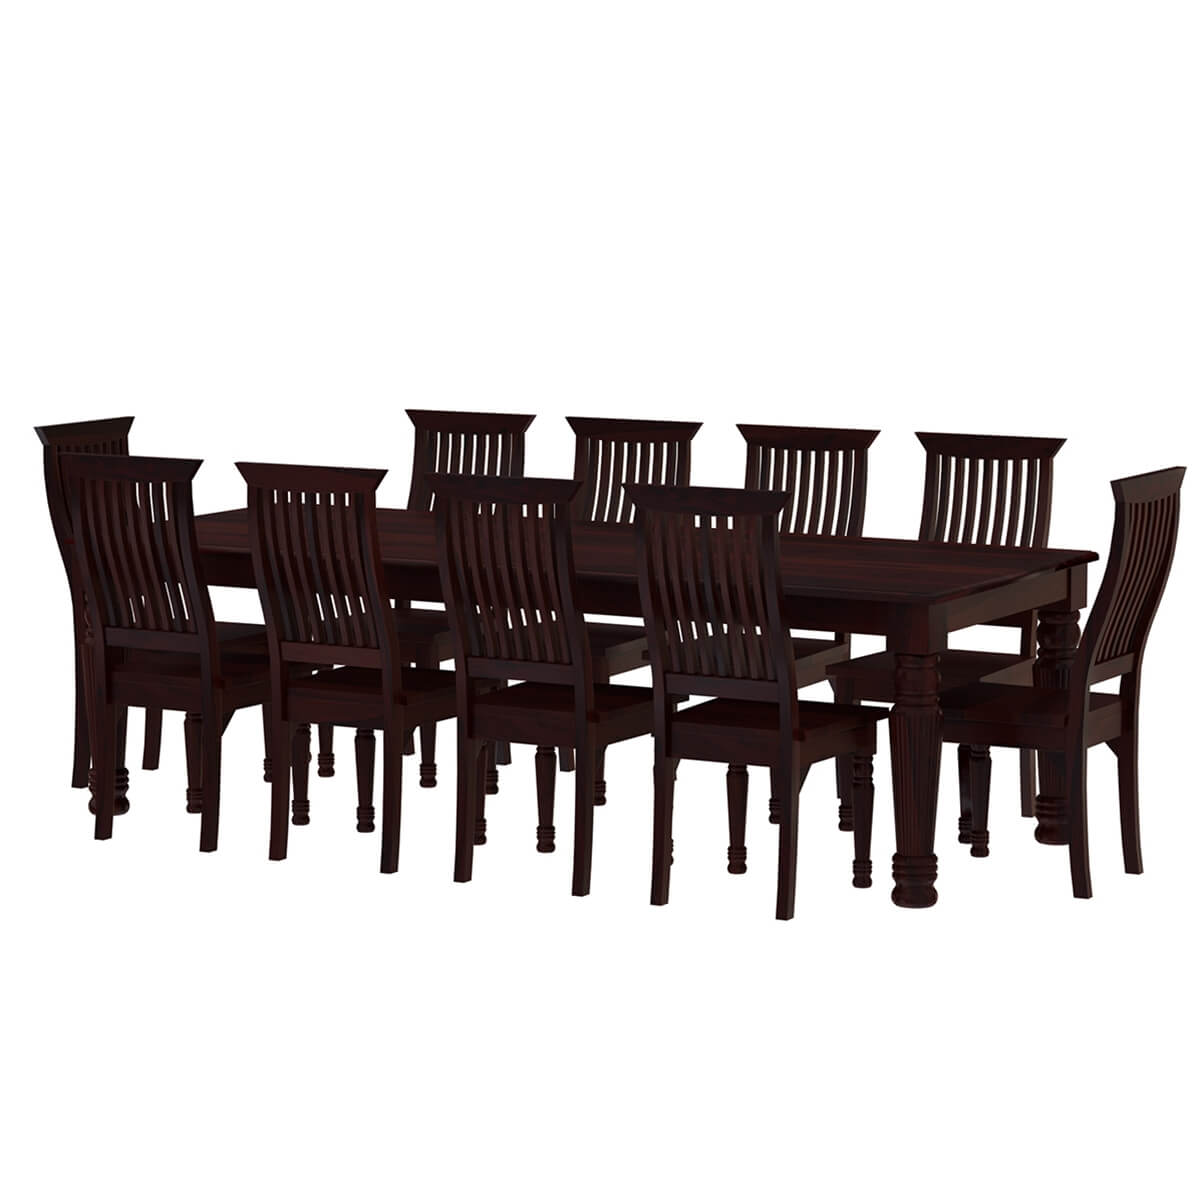 Rustic Wood Chairs Colonial American Large Rustic Wood Dining Table And 10